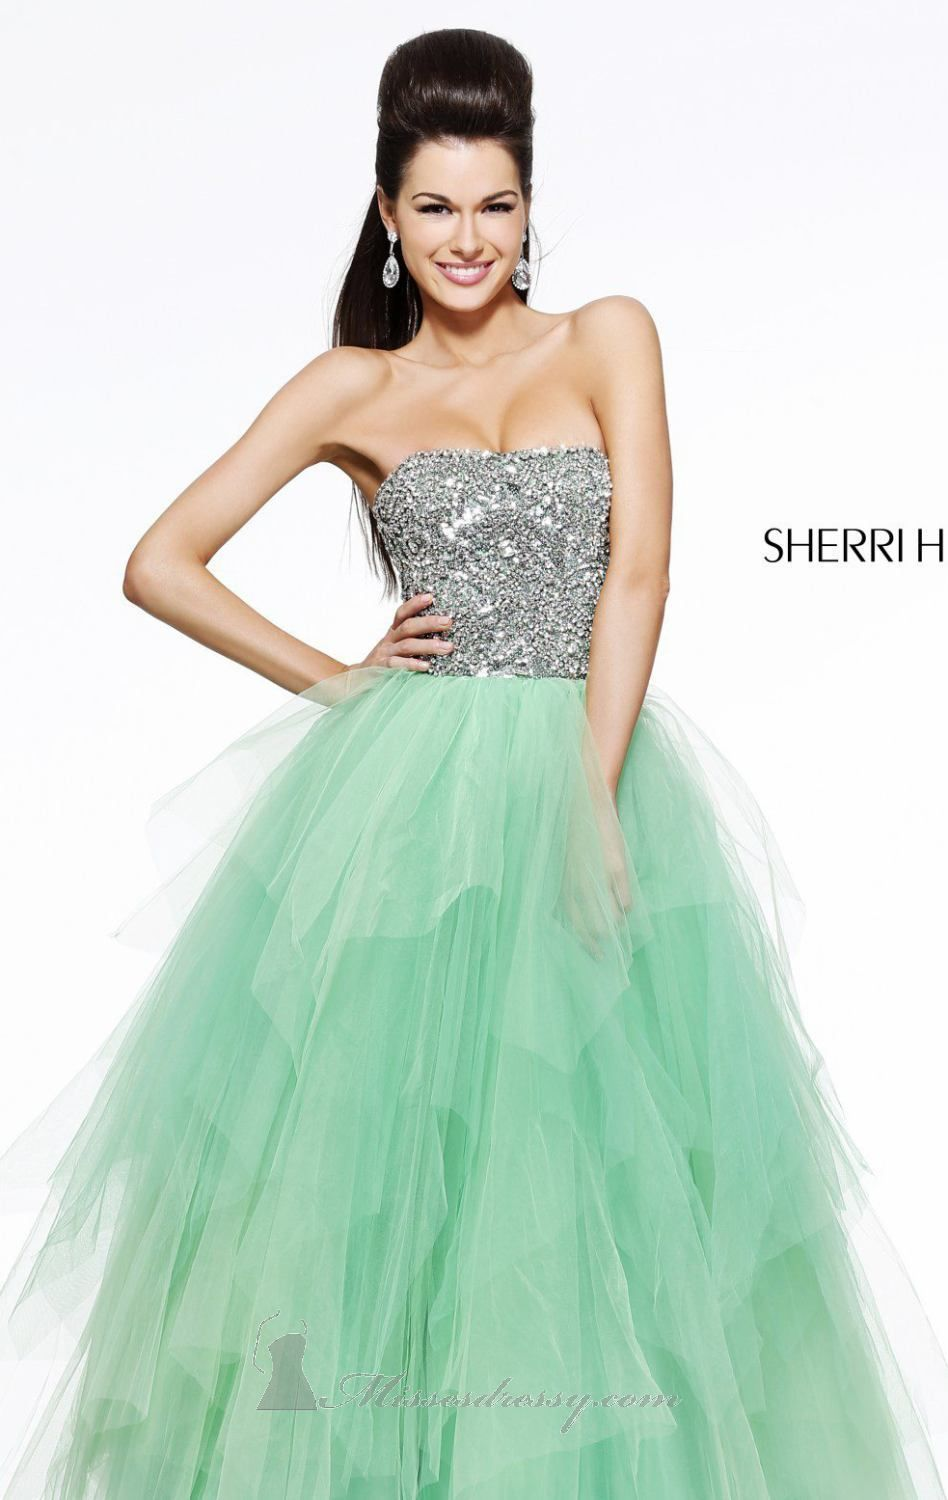 Sadie Robertson by Sherri Hill 11085! This dress is GORGEOUS ...